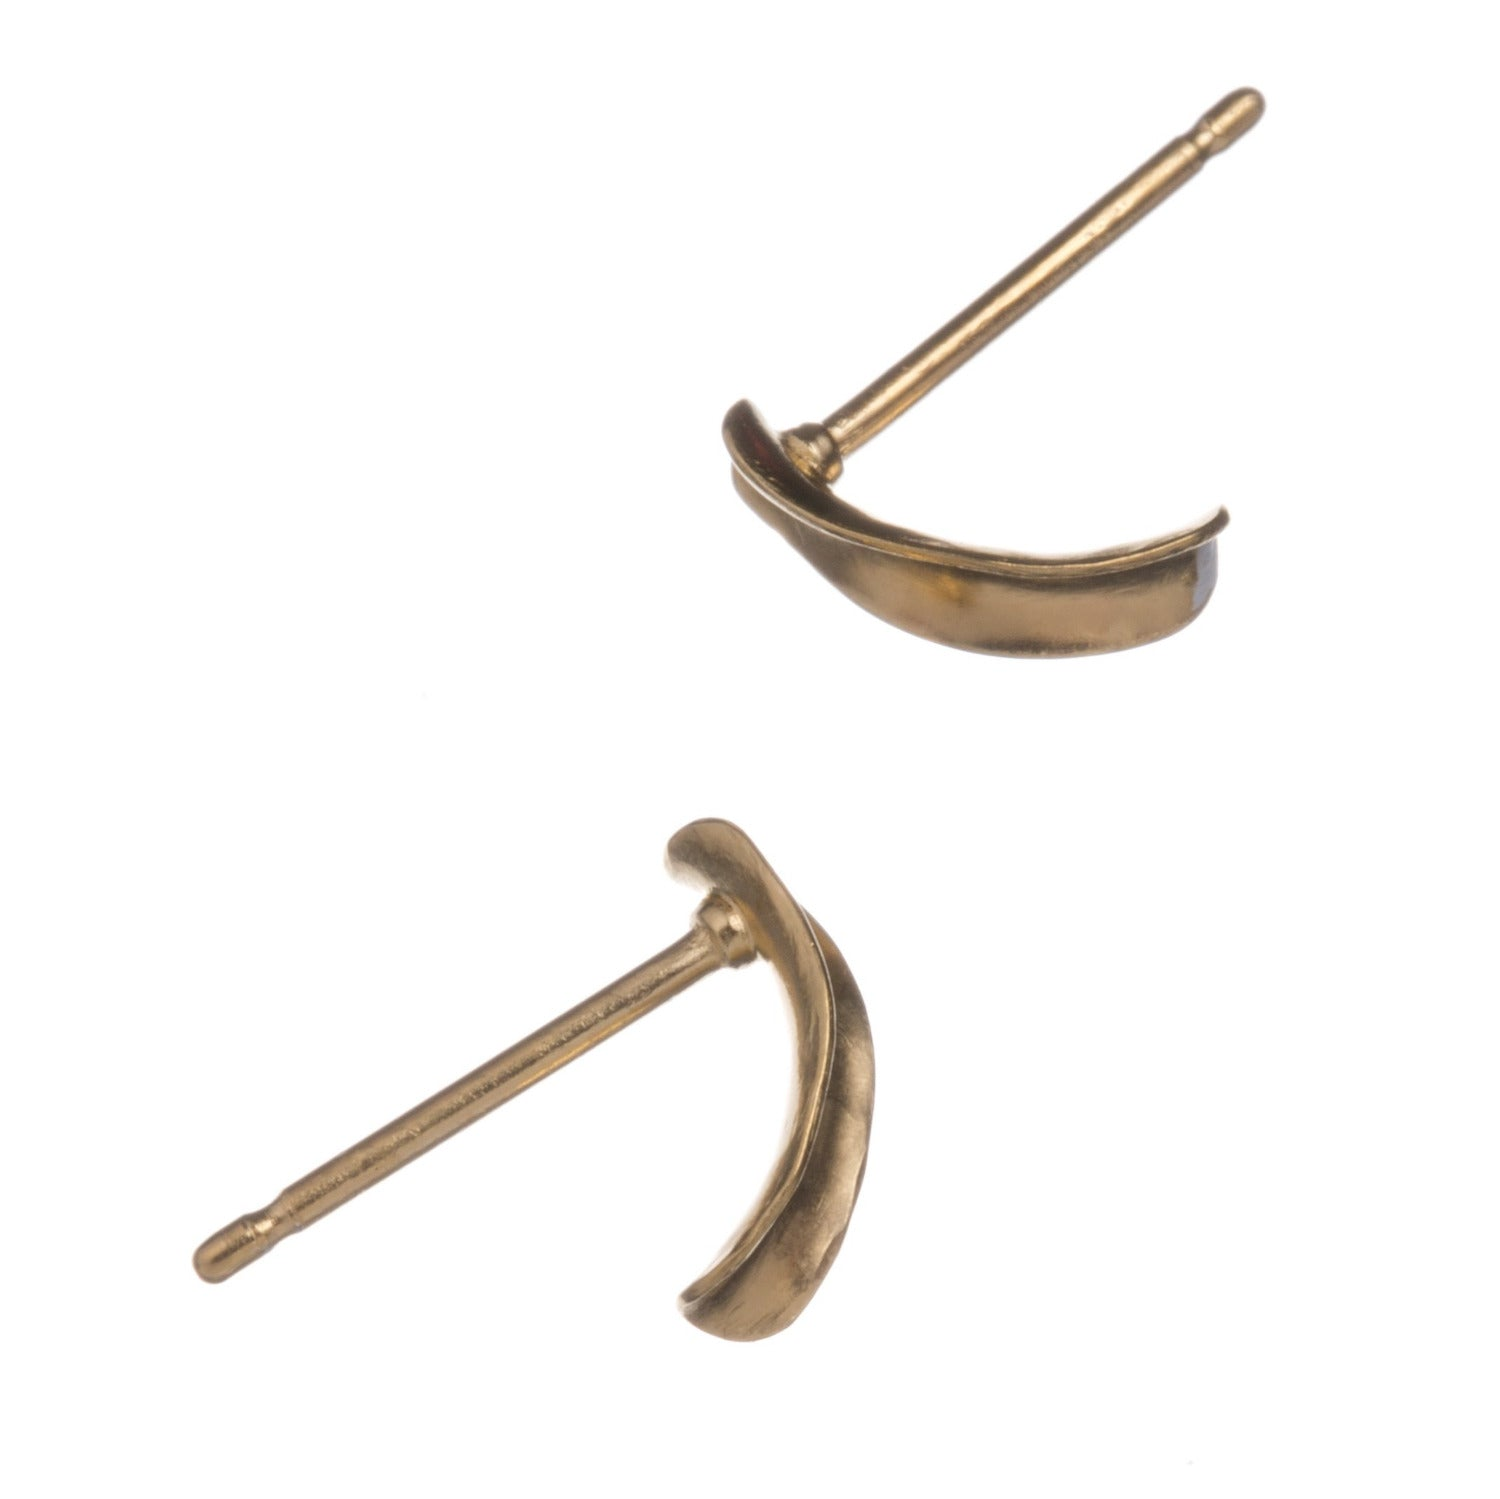 Demilune studs style 1, gold vermeil, from the side showing pins.